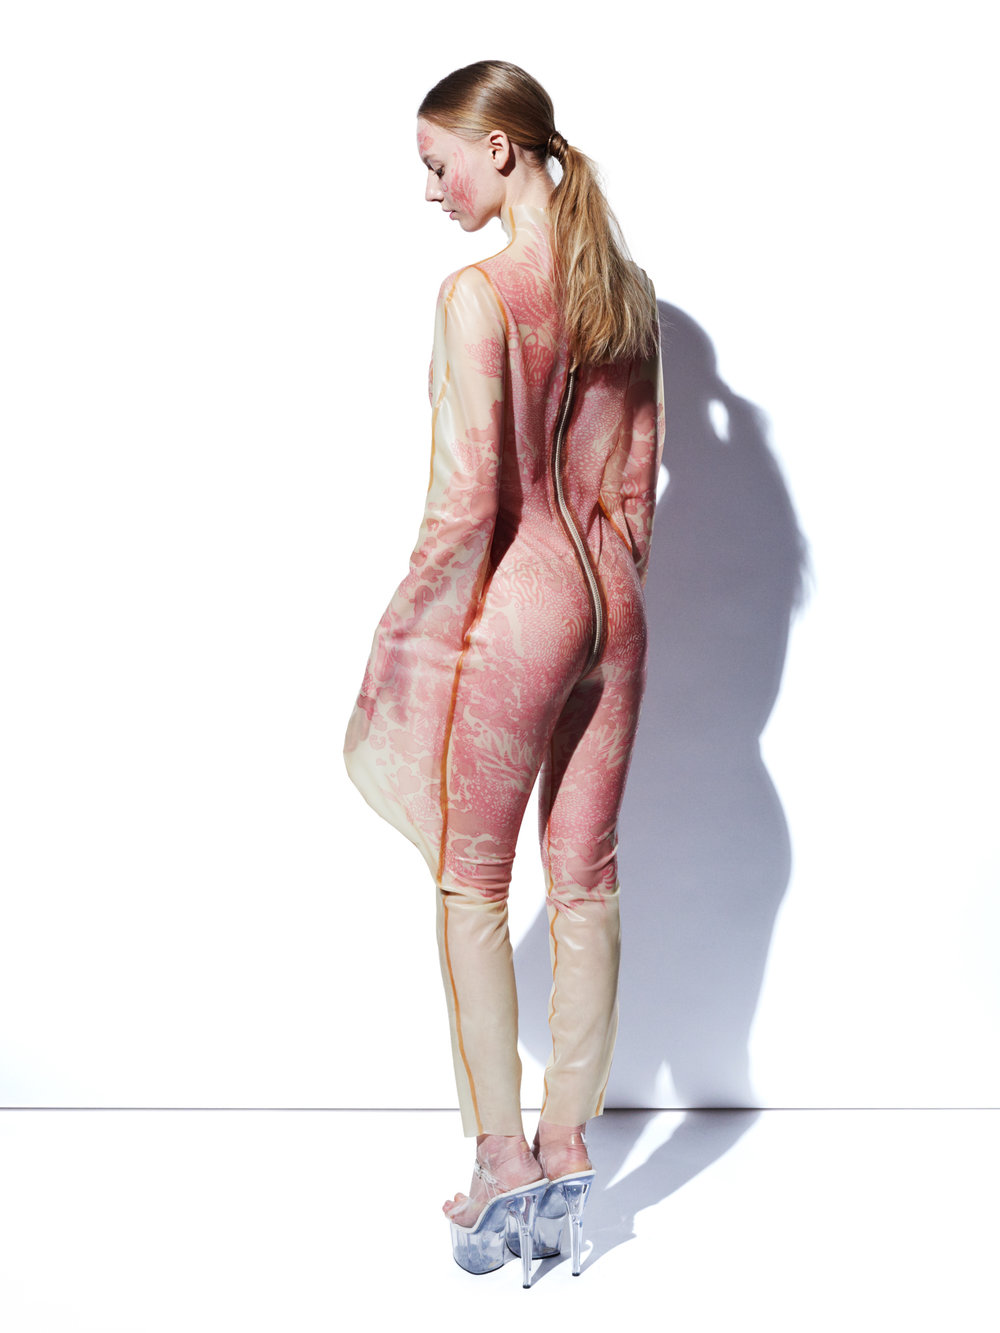 Bodysuit (back) | Alex Ulichny SILENCE Collection | Digitally Printed Latex | 2016